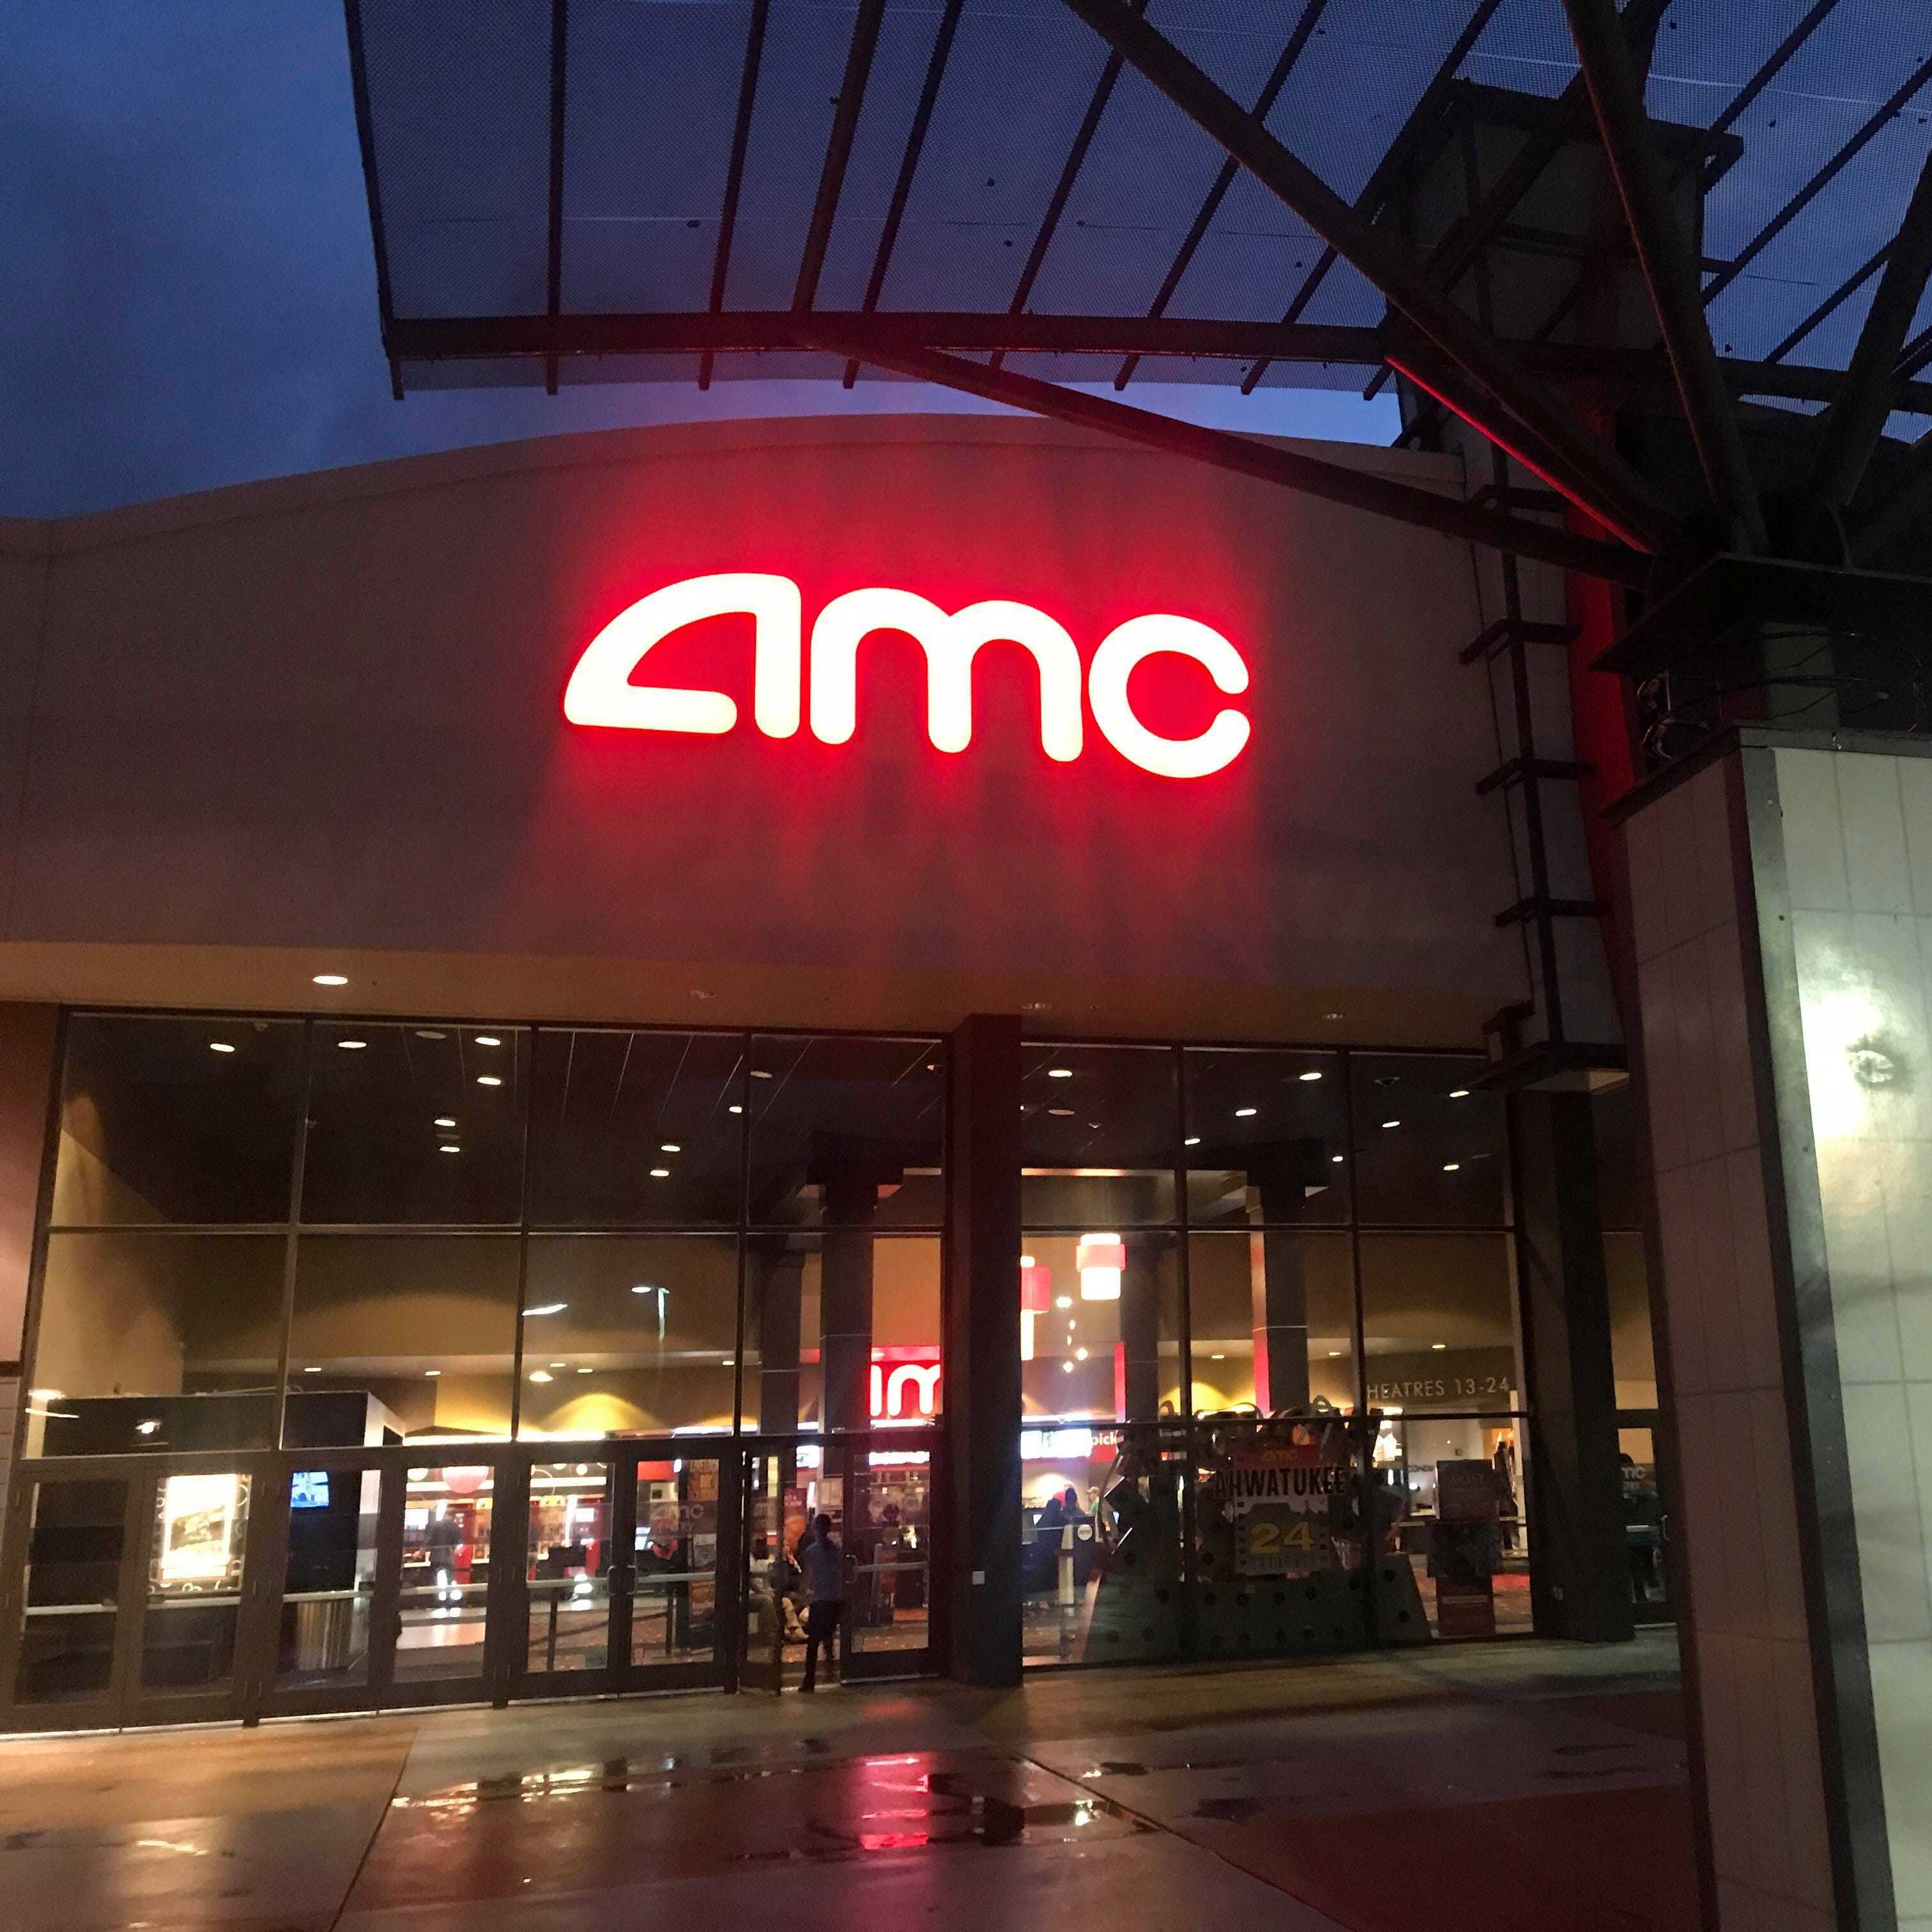 Phoenix man accuses AMC theater of racial profiling after he's accused of sneaking in; his video goes viral